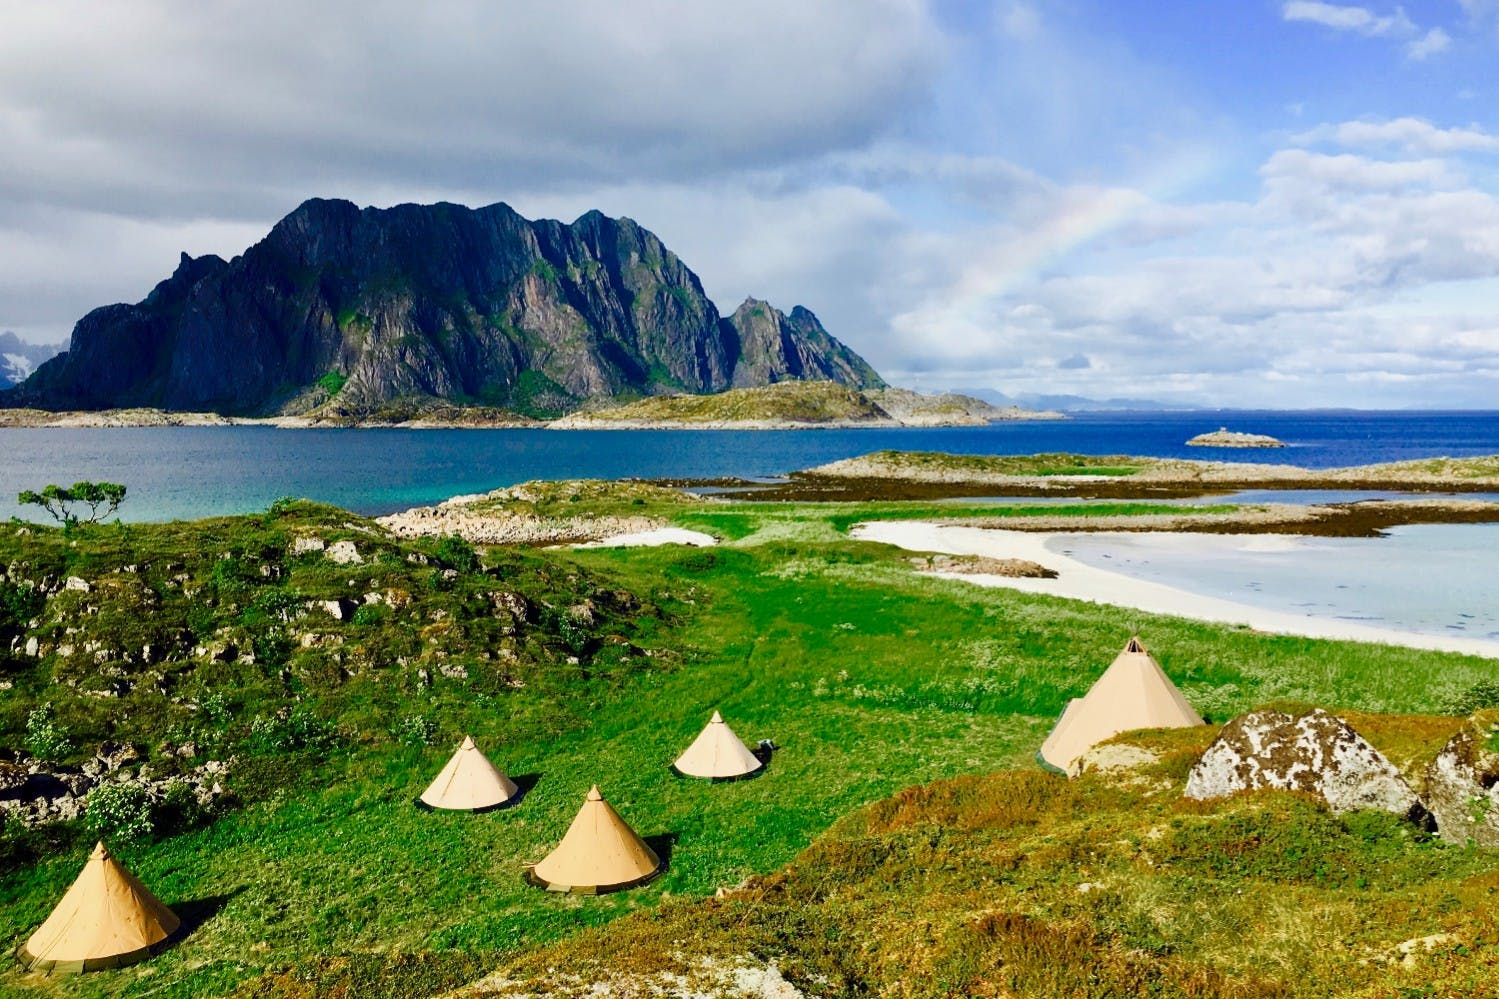 sami teepees on the lofoten islands in norway